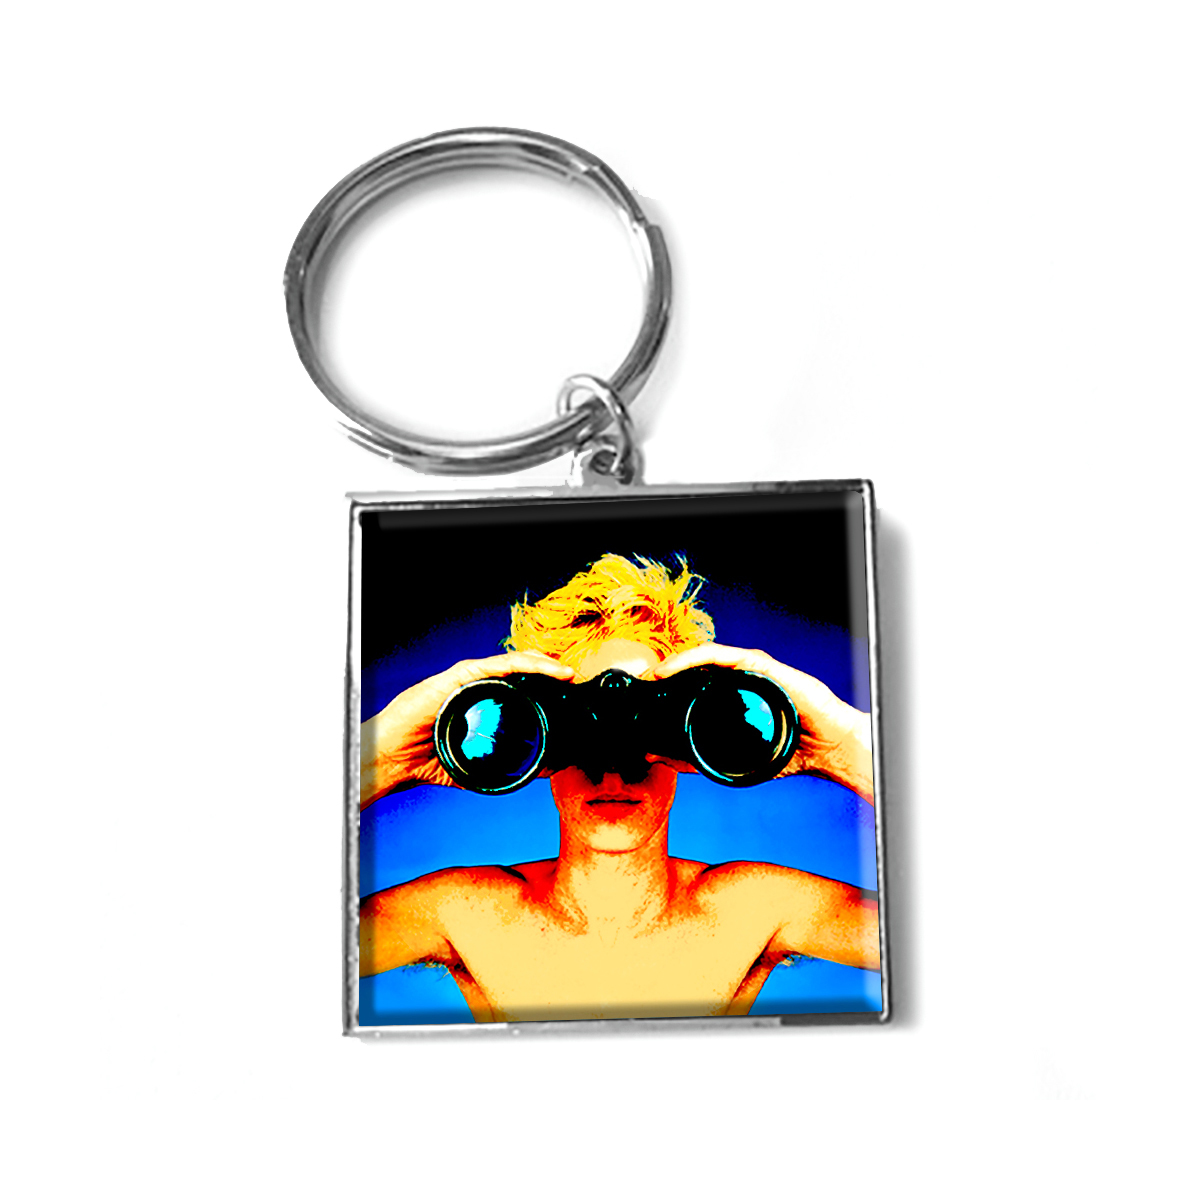 Rush Power Windows Keychain